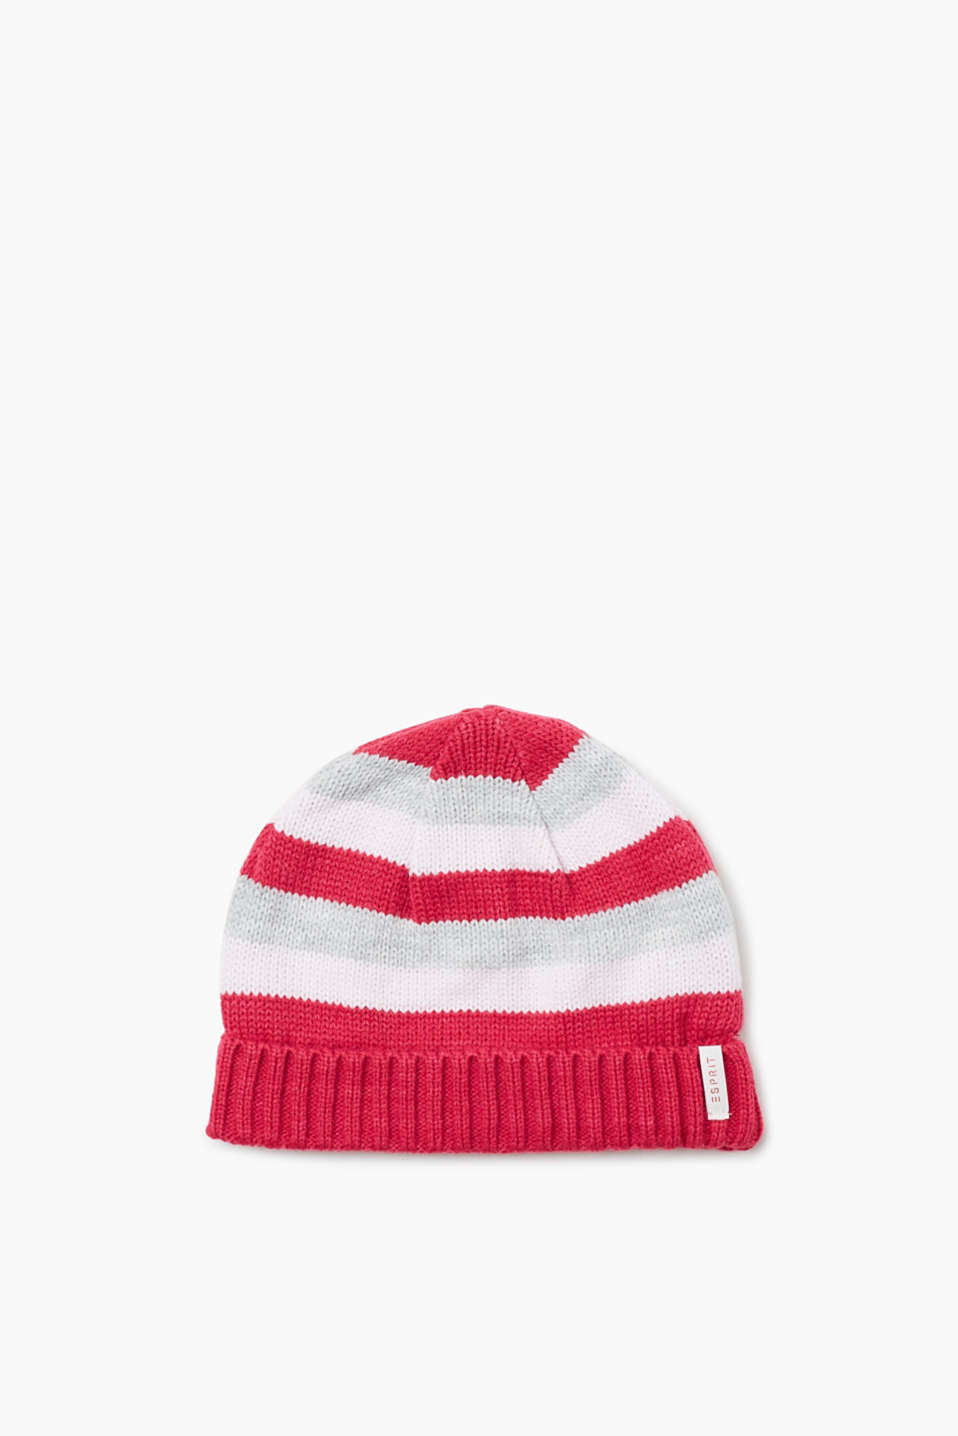 Esprit - Striped hat with jersey lining